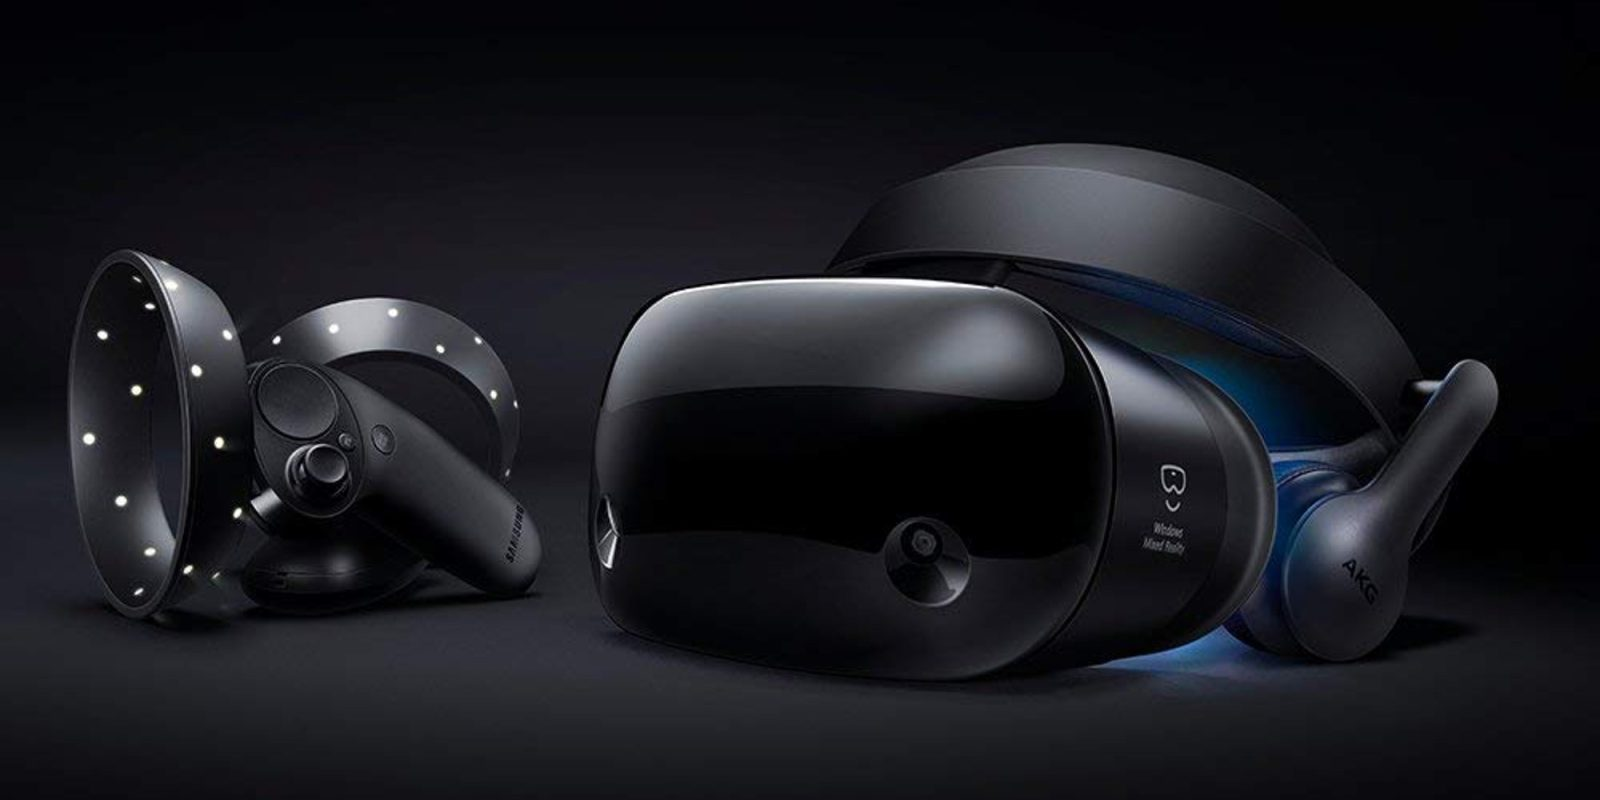 Samsung's Hmd Odyssey+ is an affordable SteamVR headset at $230 (Reg. $499)